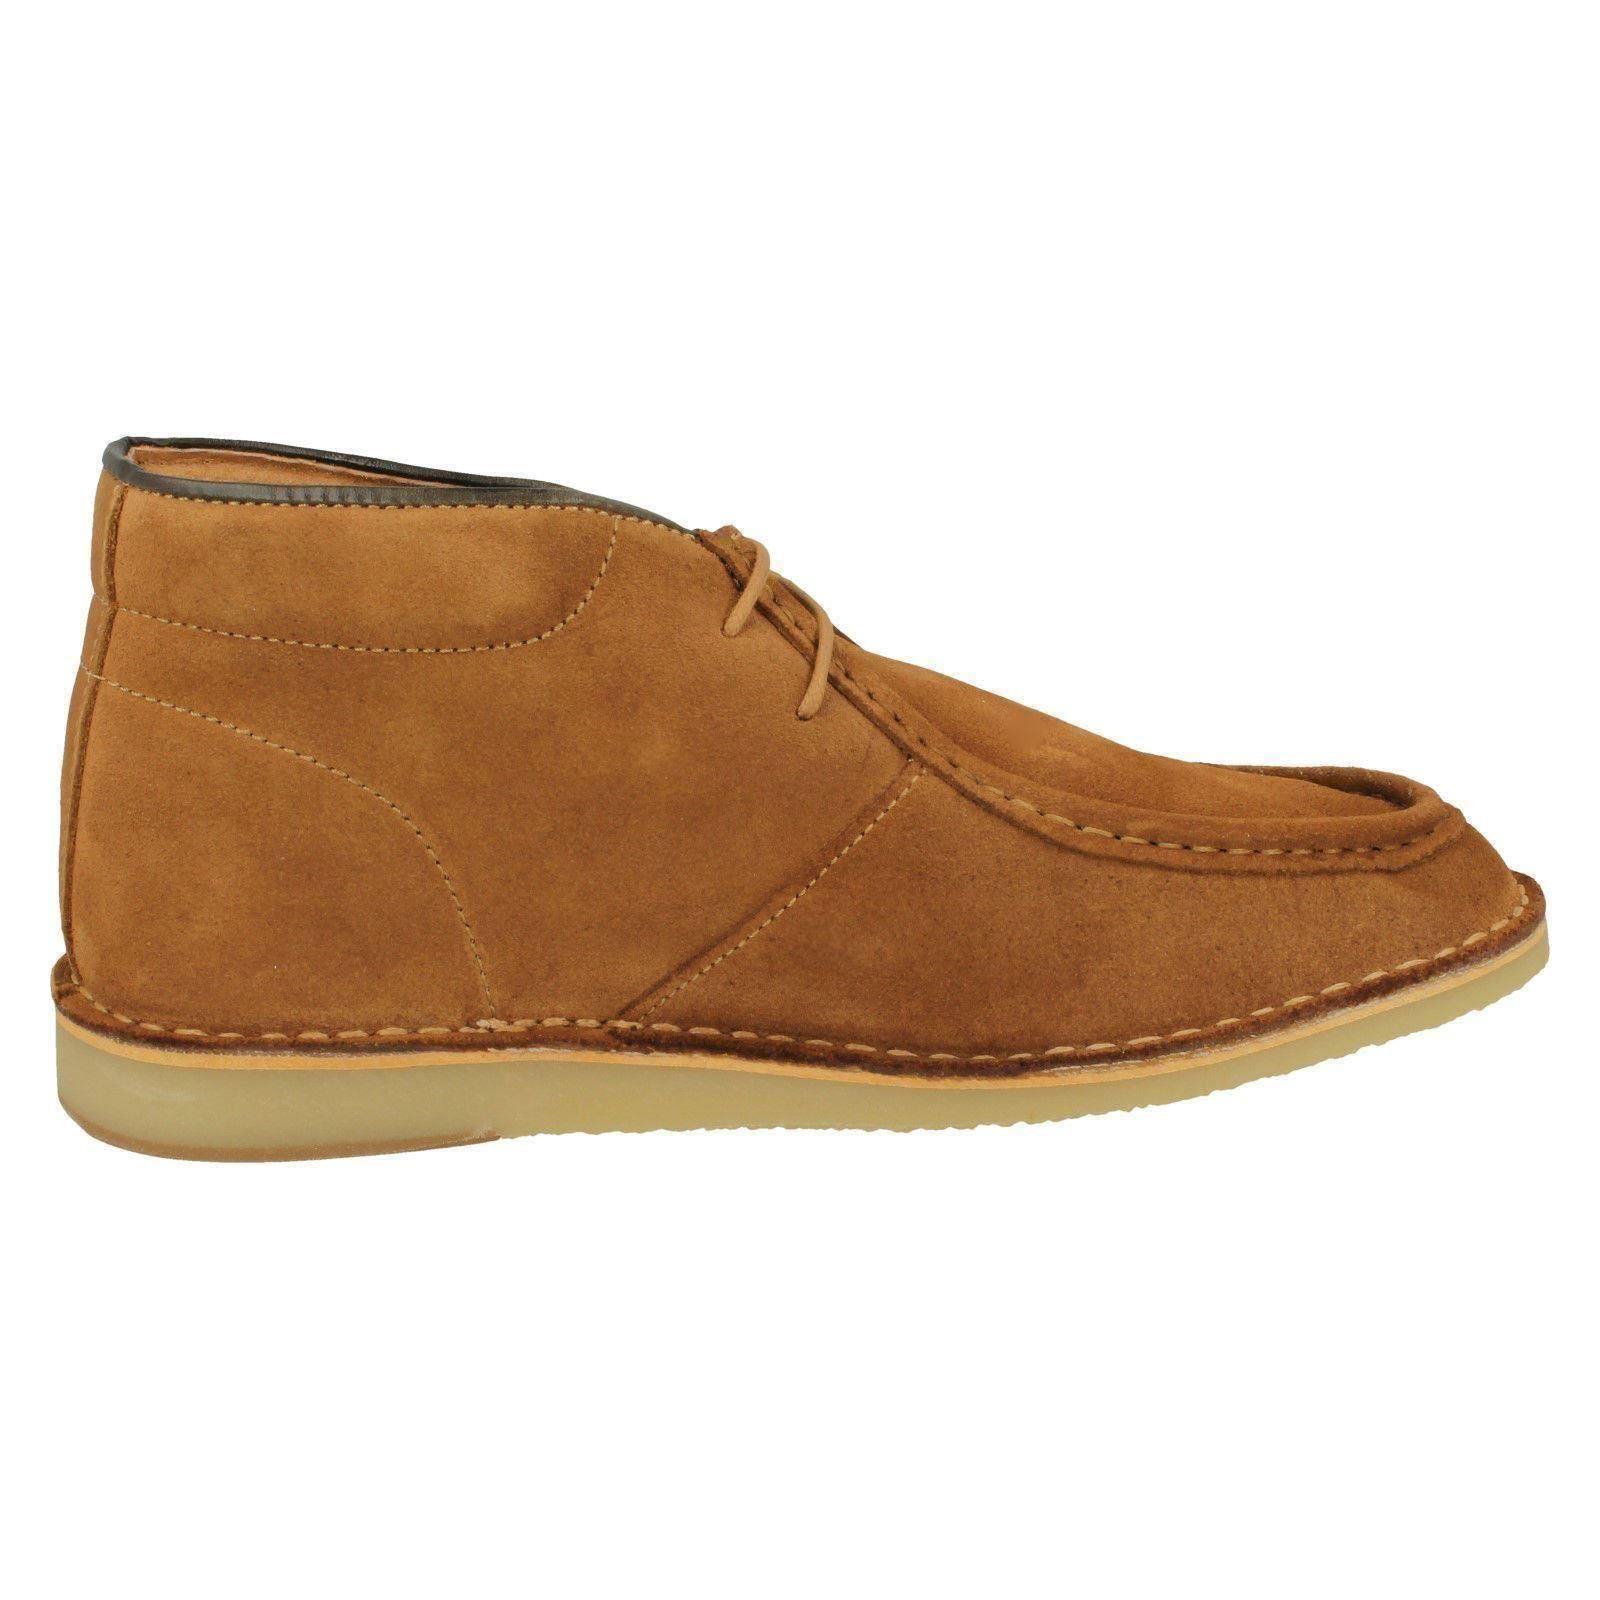 Mens Hush Puppies Smart Suede Boots Boots Suede - 'Hancock High' 7d441d